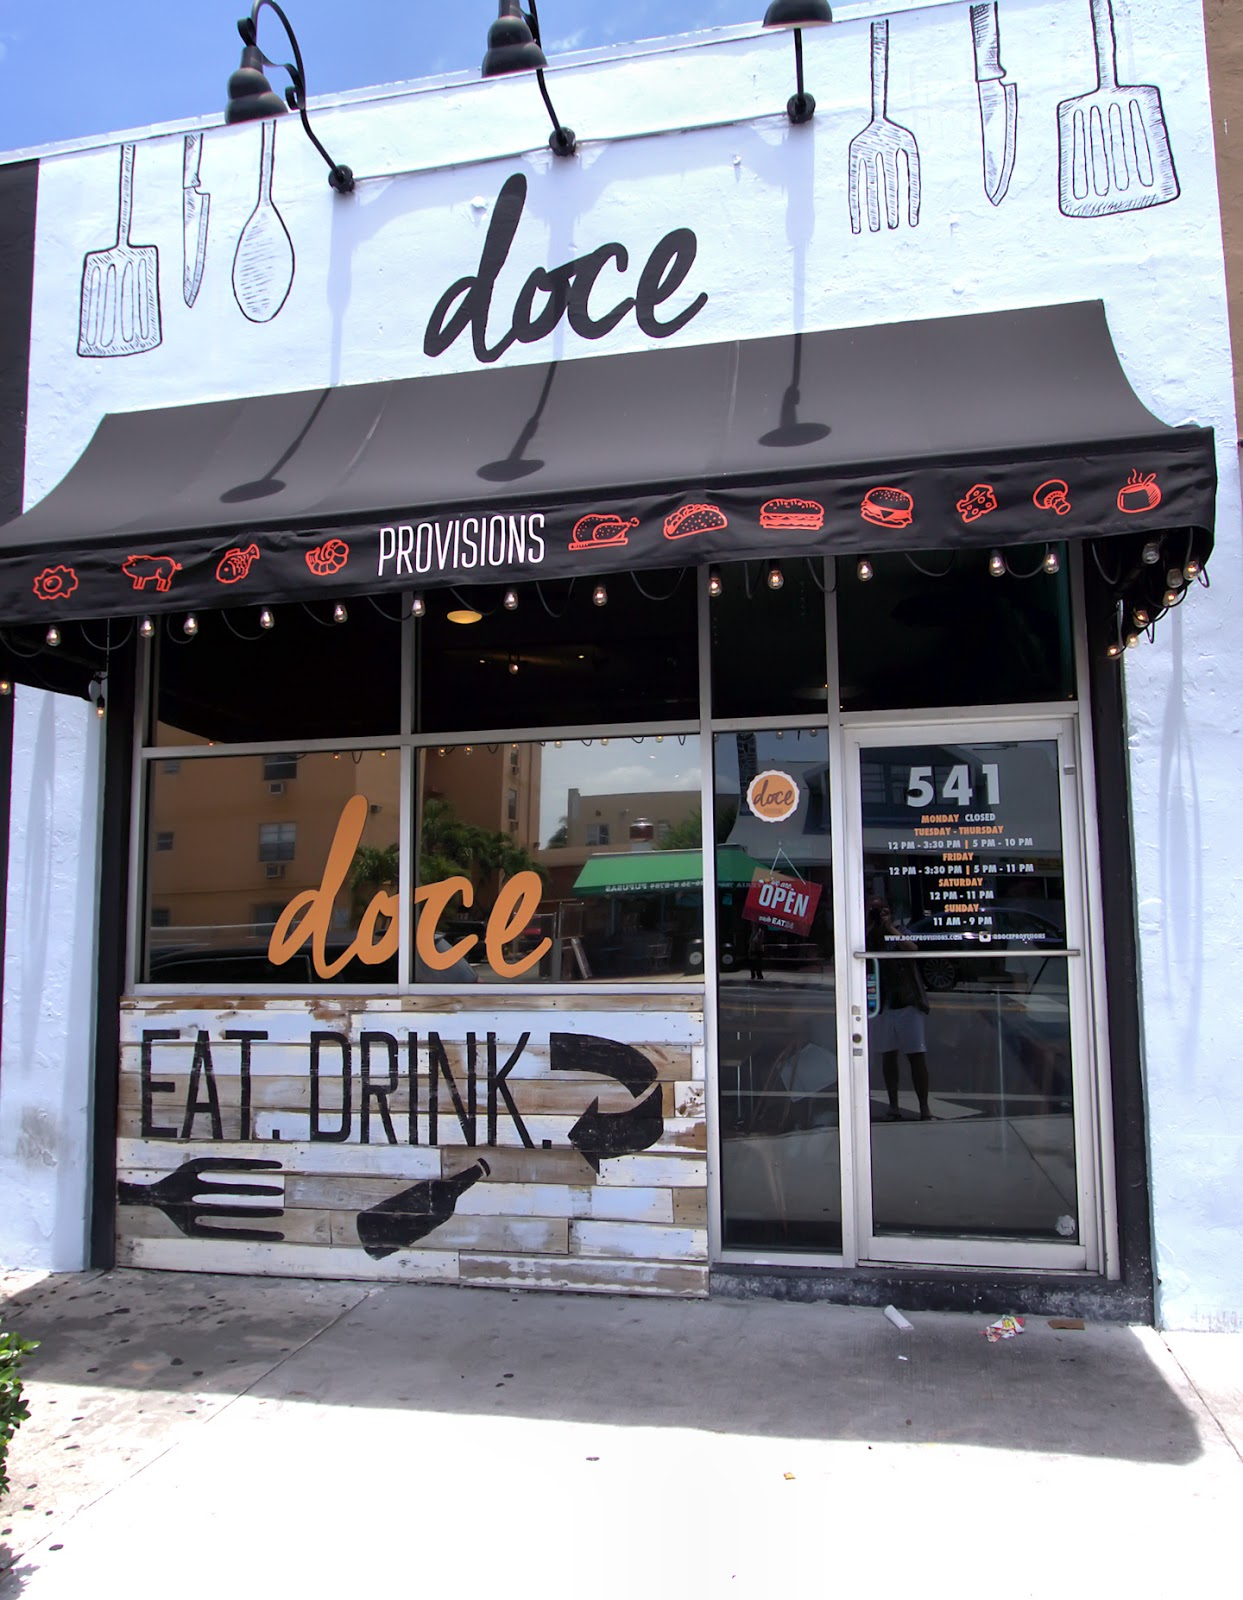 Doce Provisions